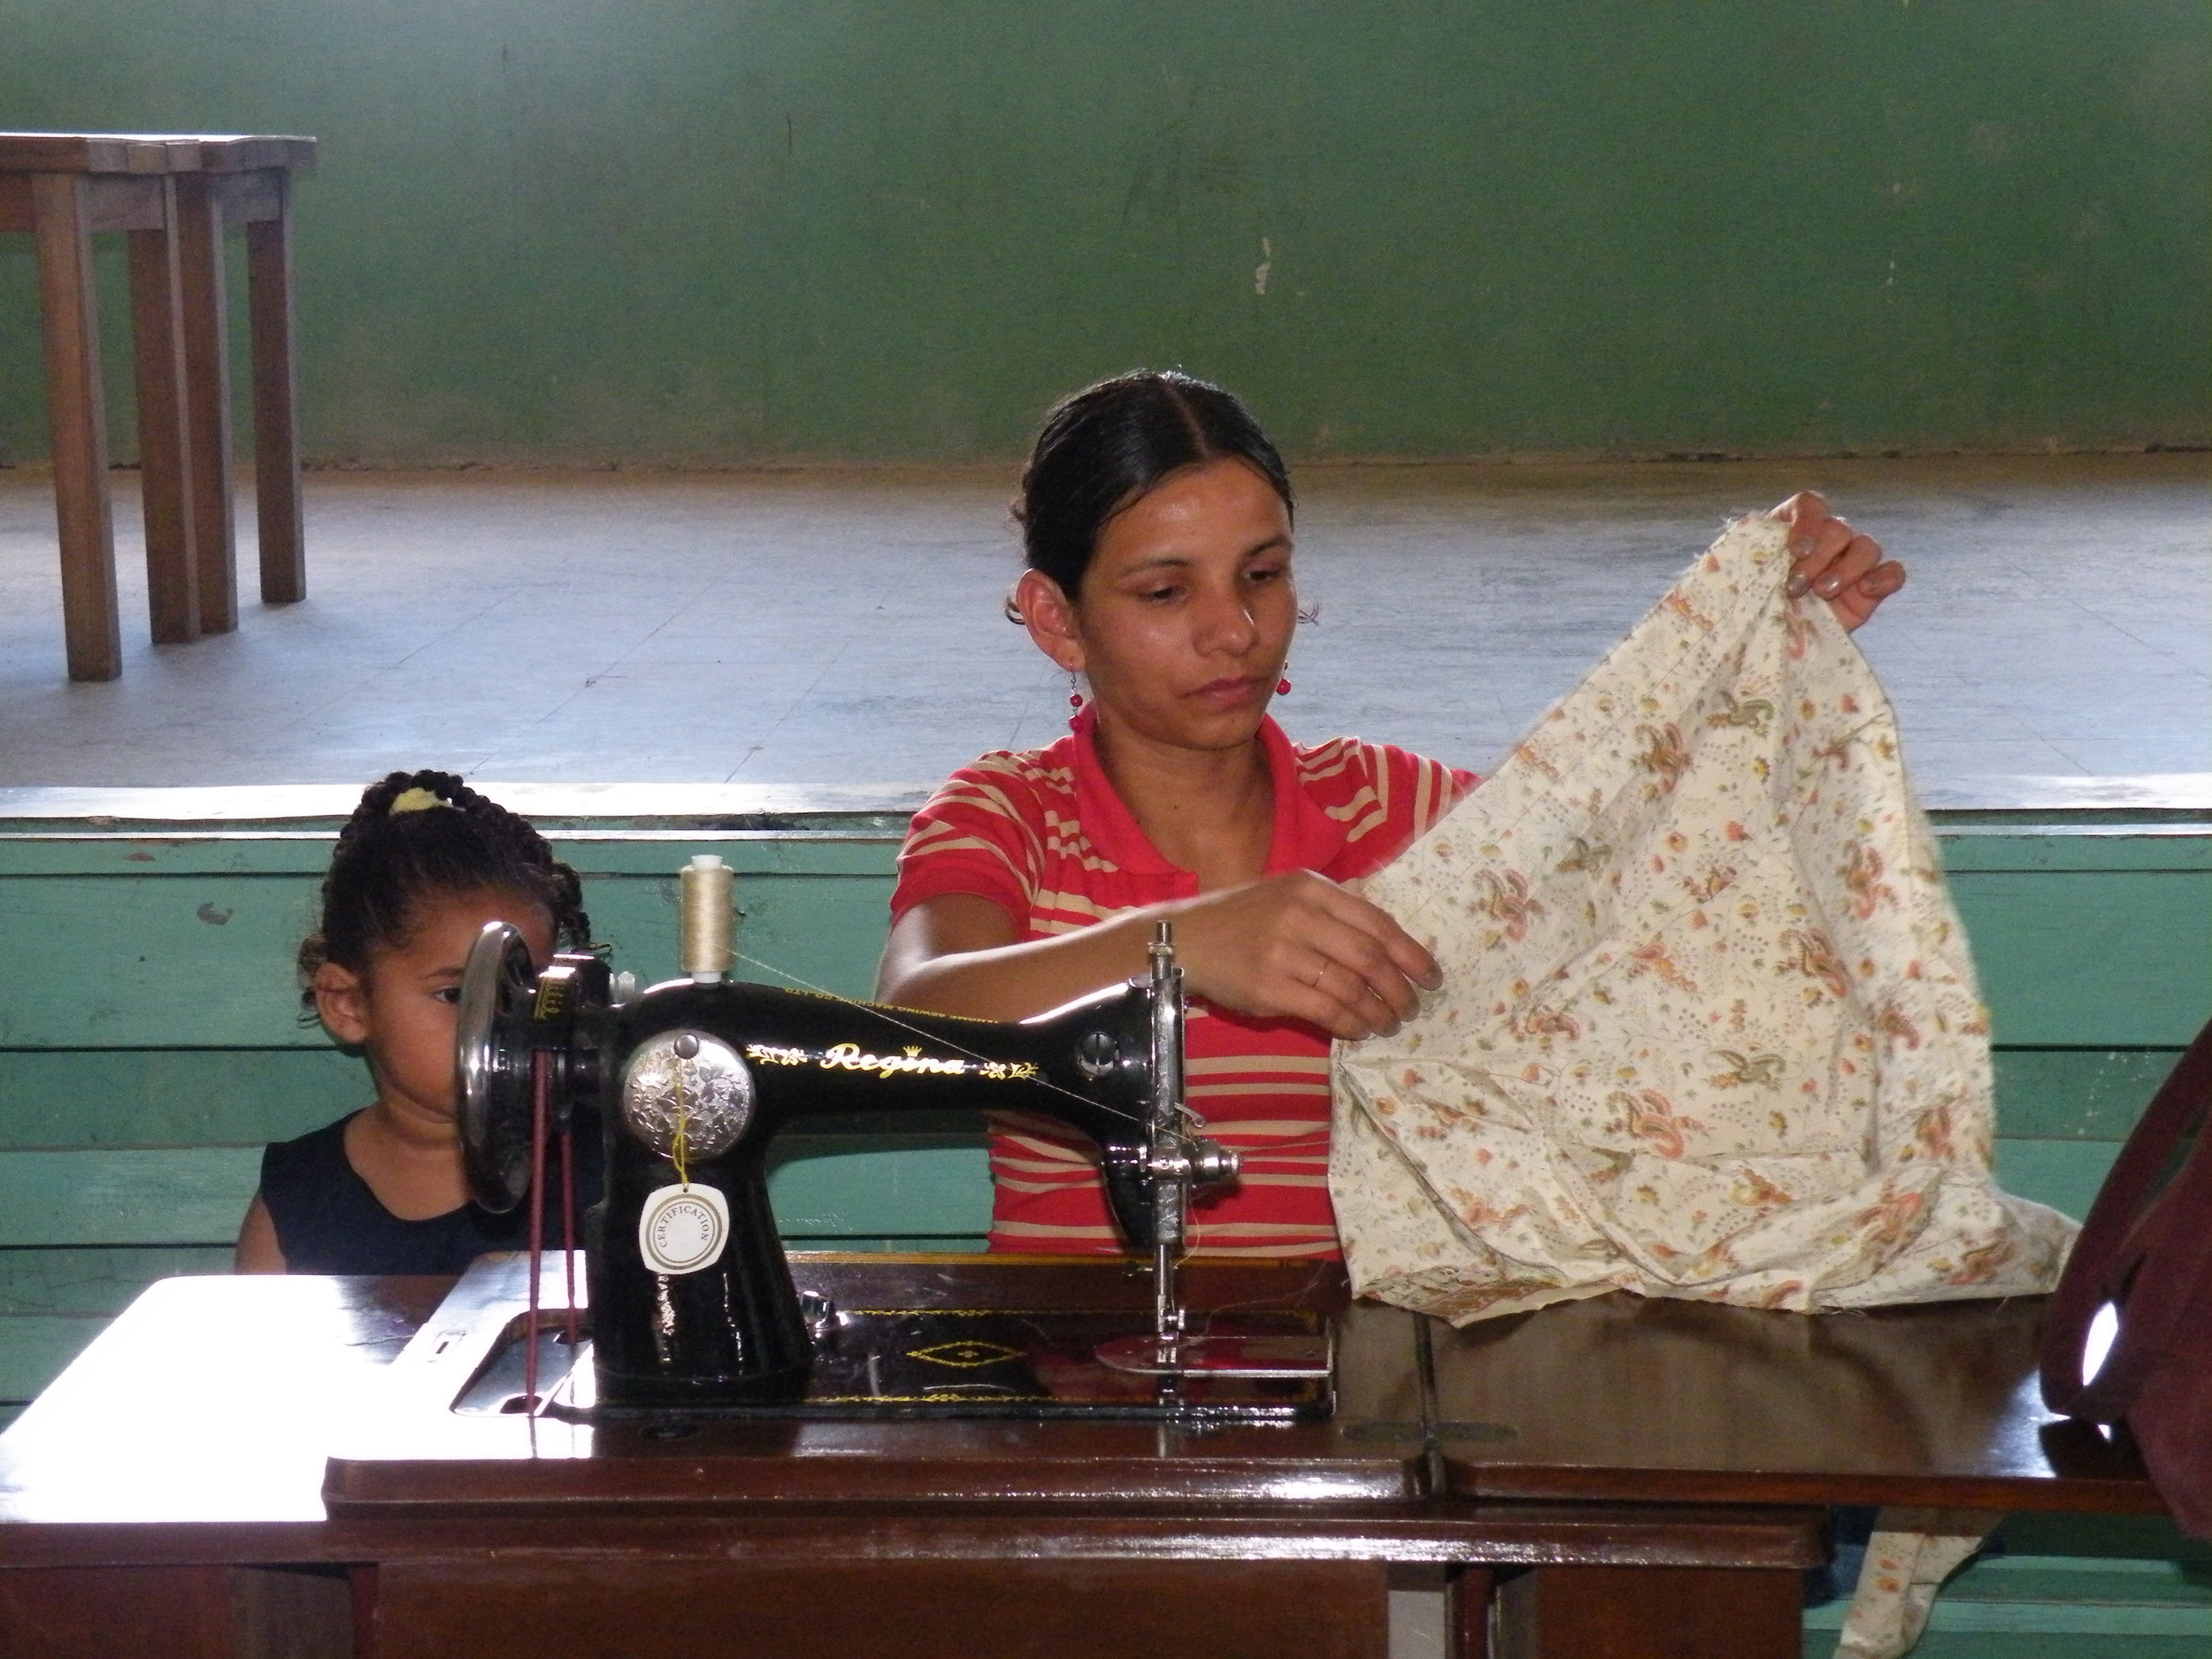 Student with her child close by while working in class.